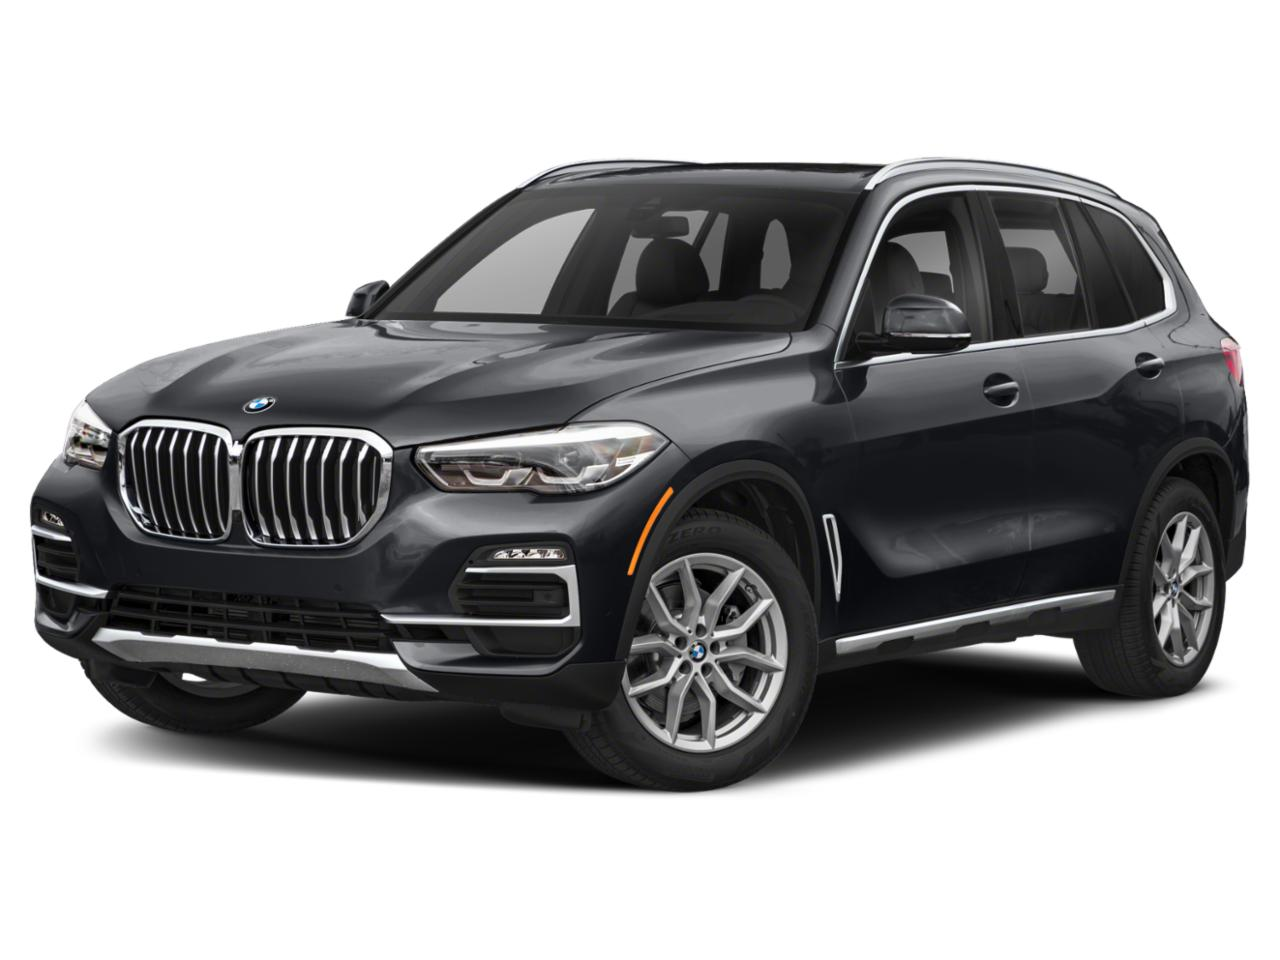 2020 BMW X5 xDrive40i Vehicle Photo in Muncy, PA 17756